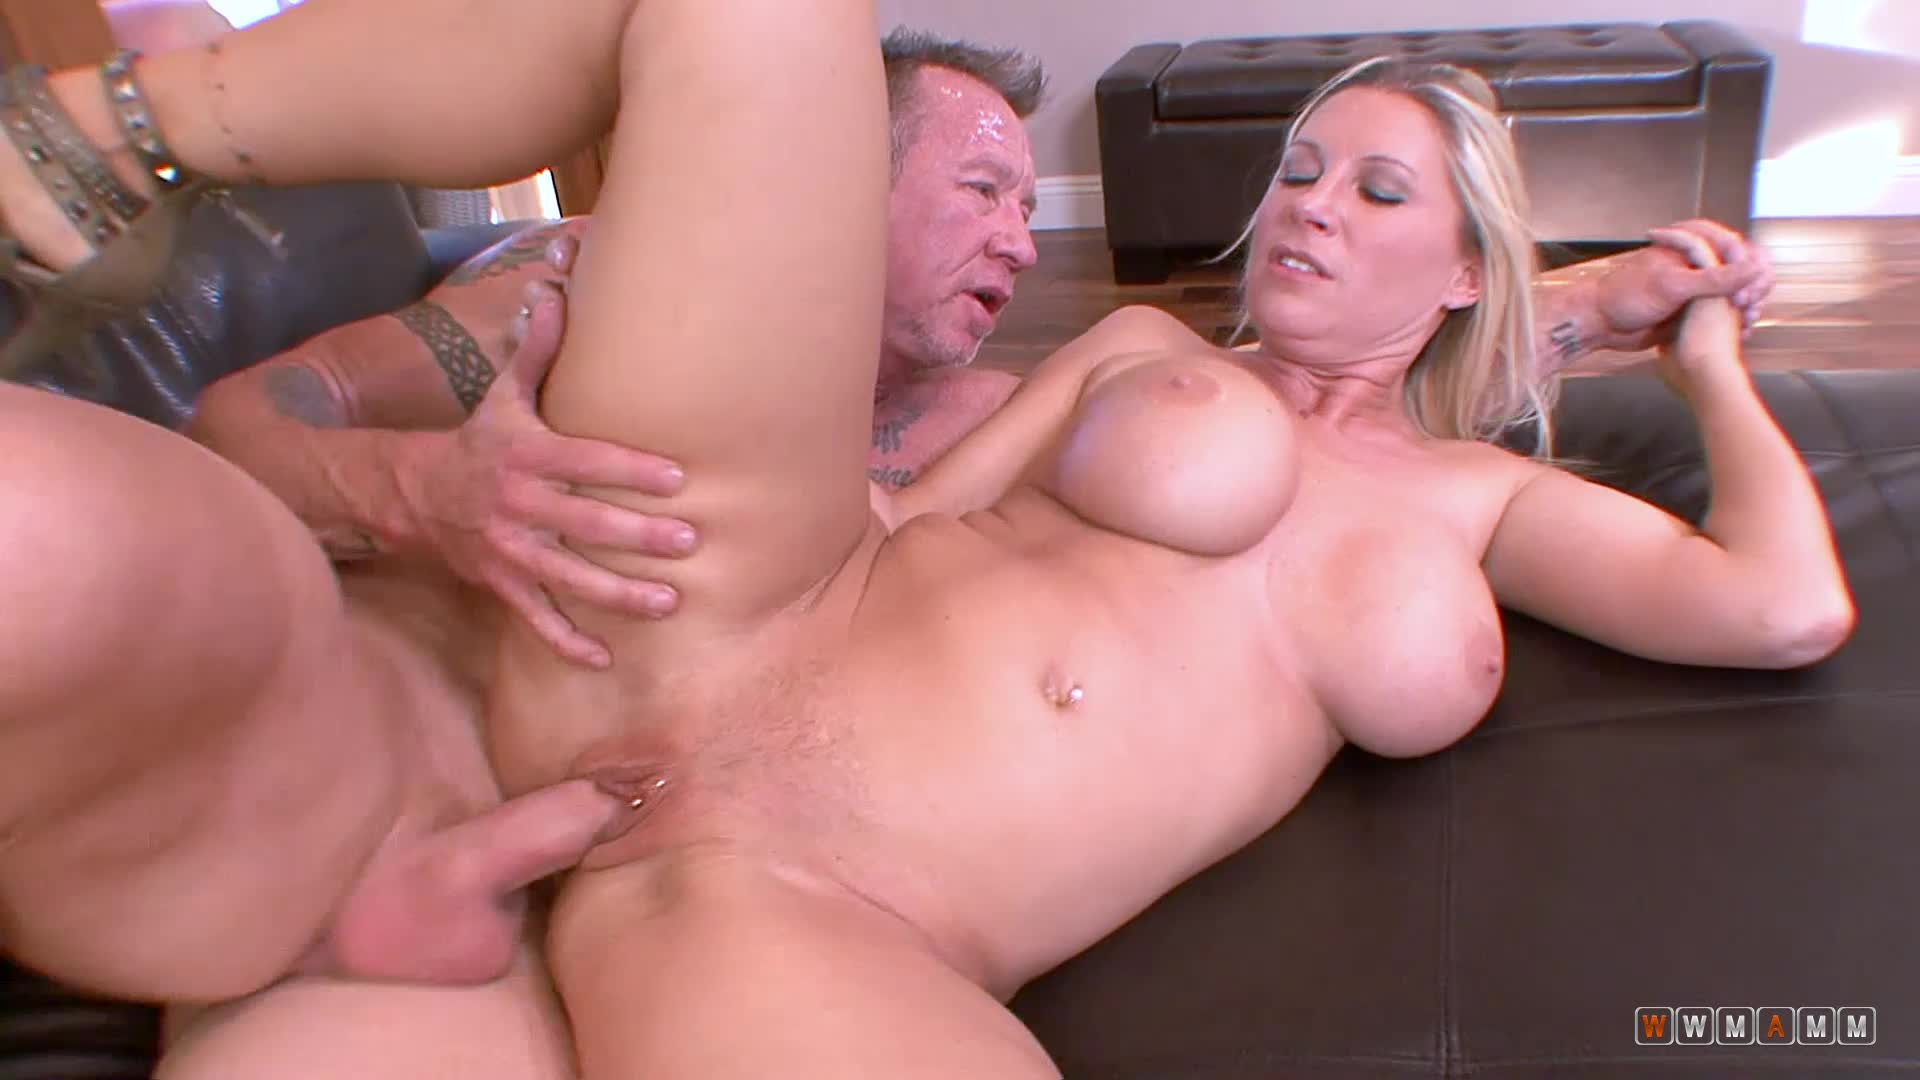 Devons Pussy Felt So Good On His Cock Even When He Already Cum